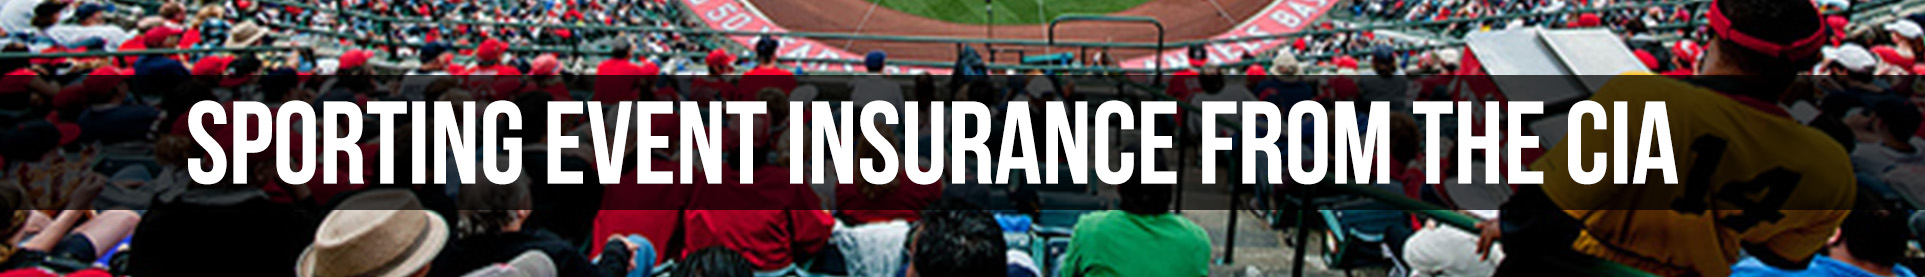 Insurance for Sporting Events from the CIA